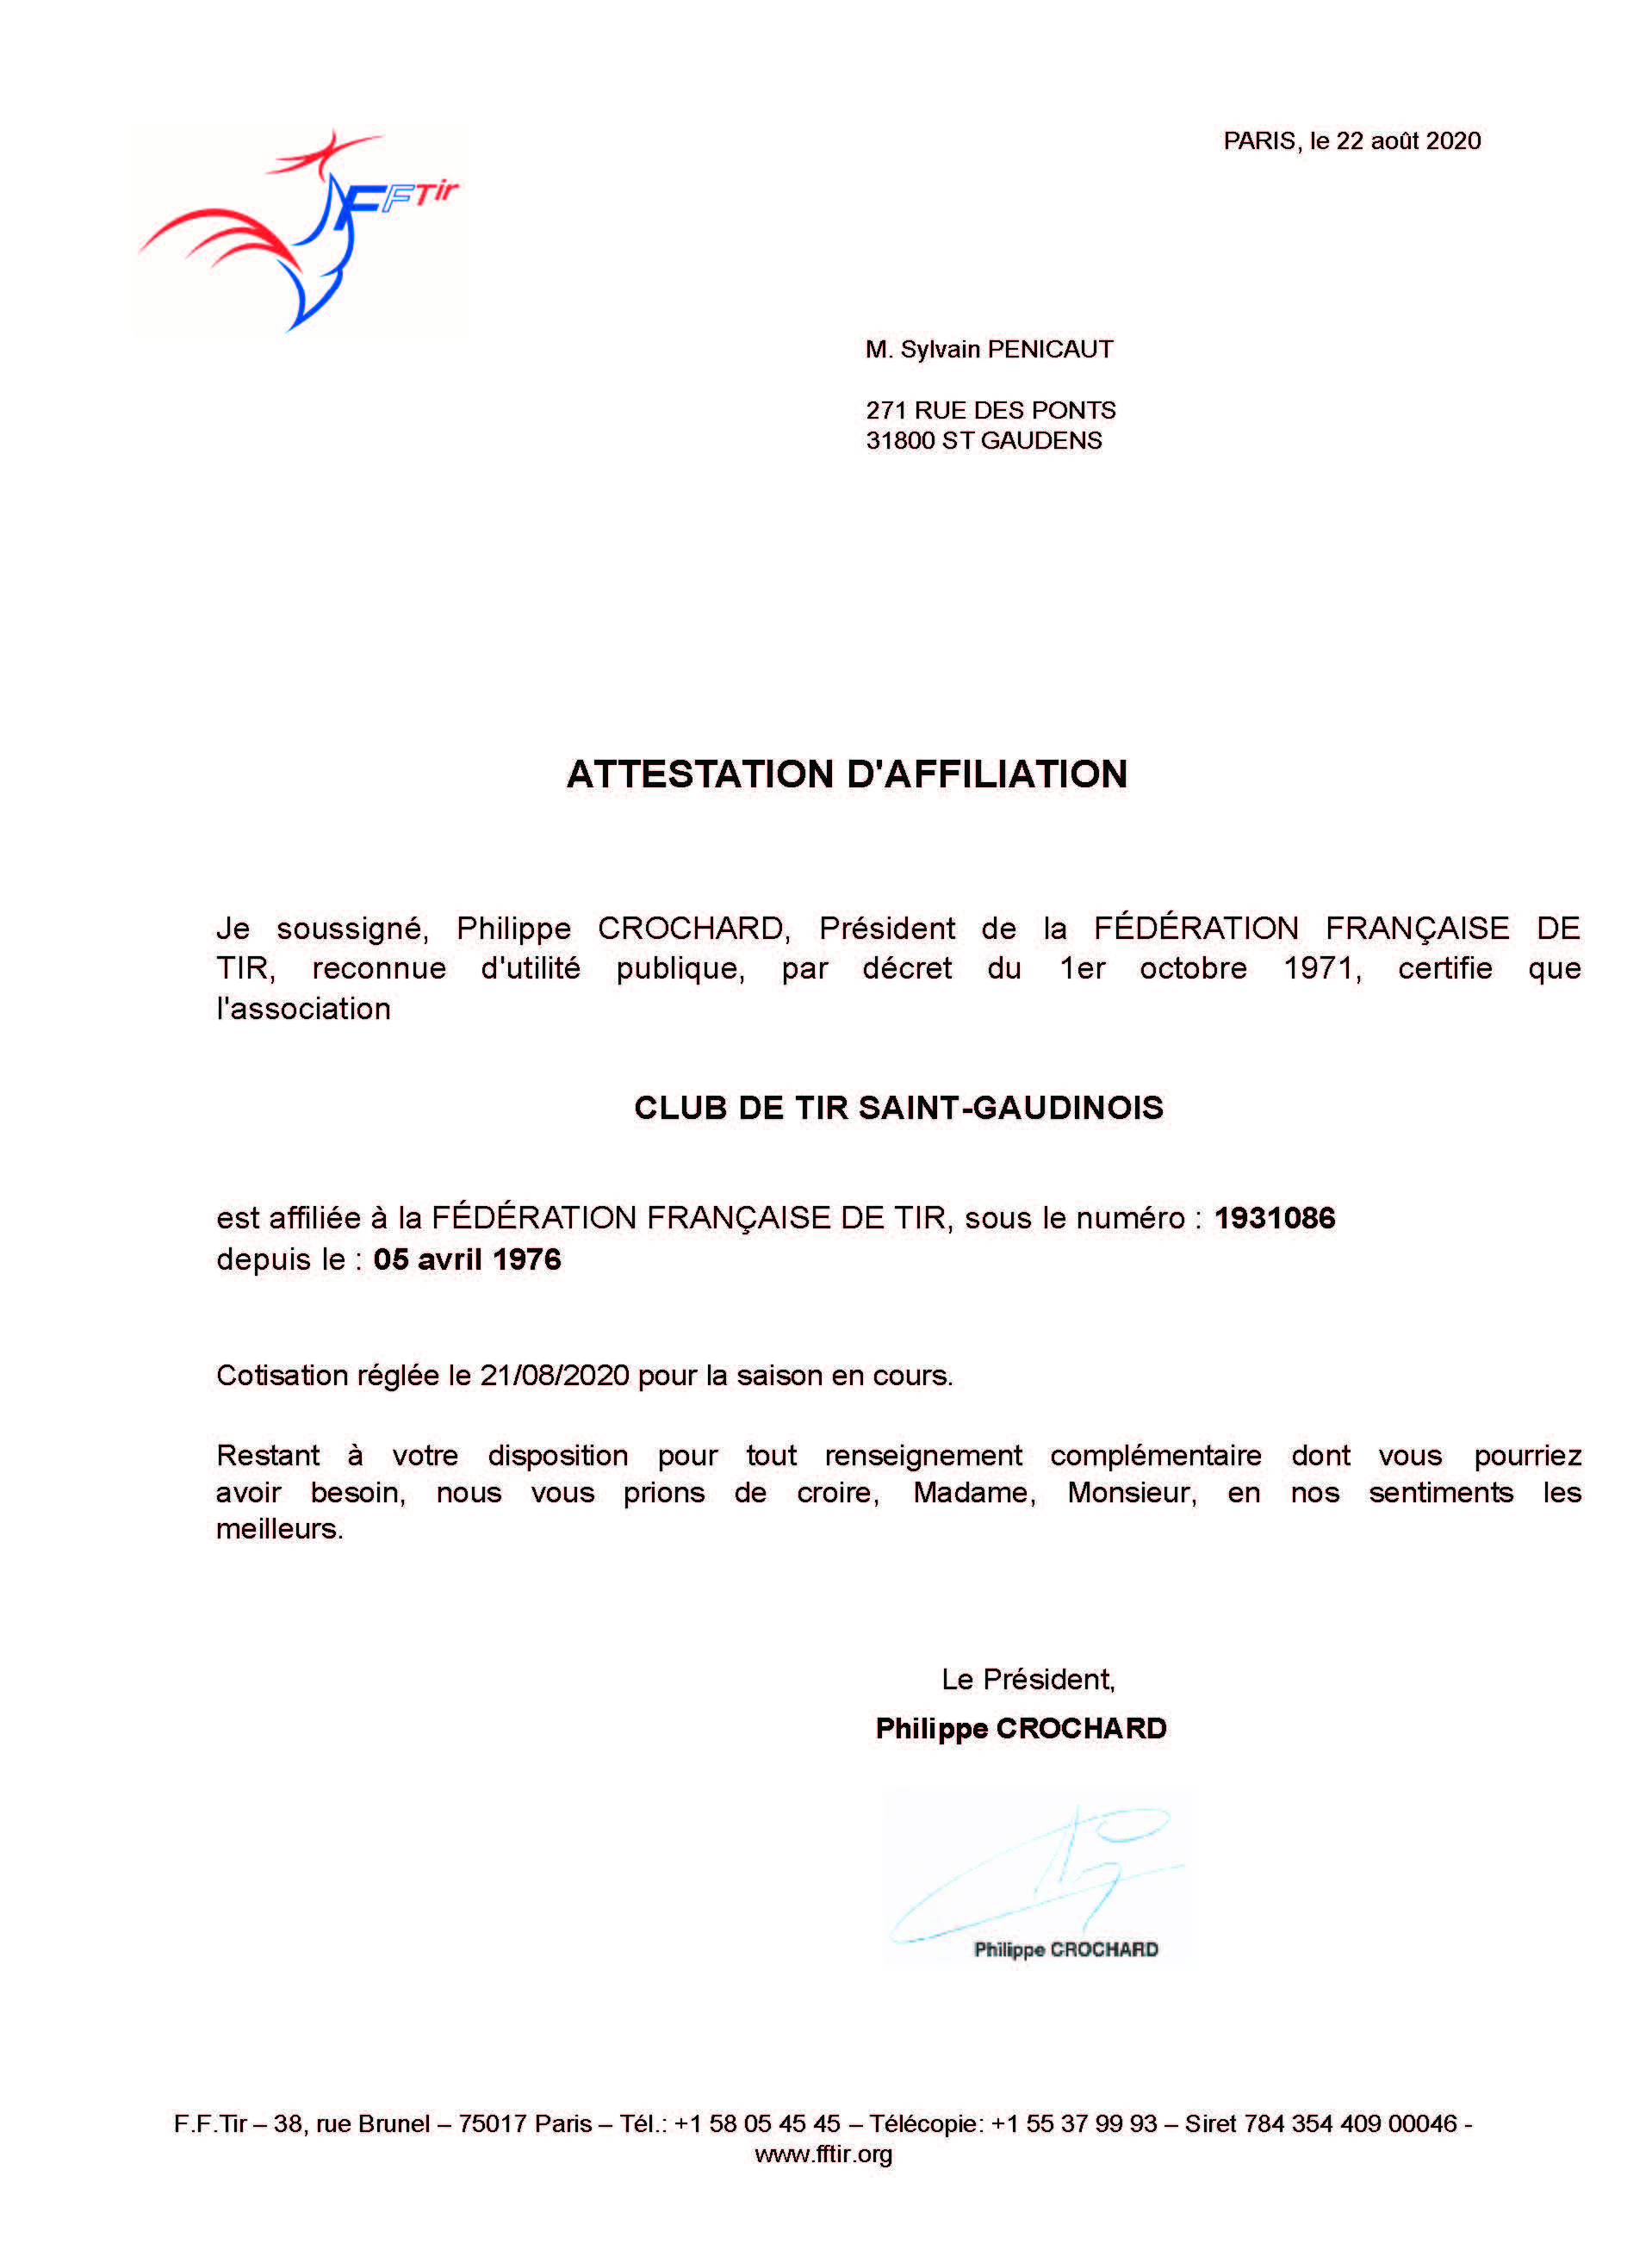 Attestation_Affiliation_1931086_CLUB-DE-TIR-SAINT-GAUDINOIS.jpg